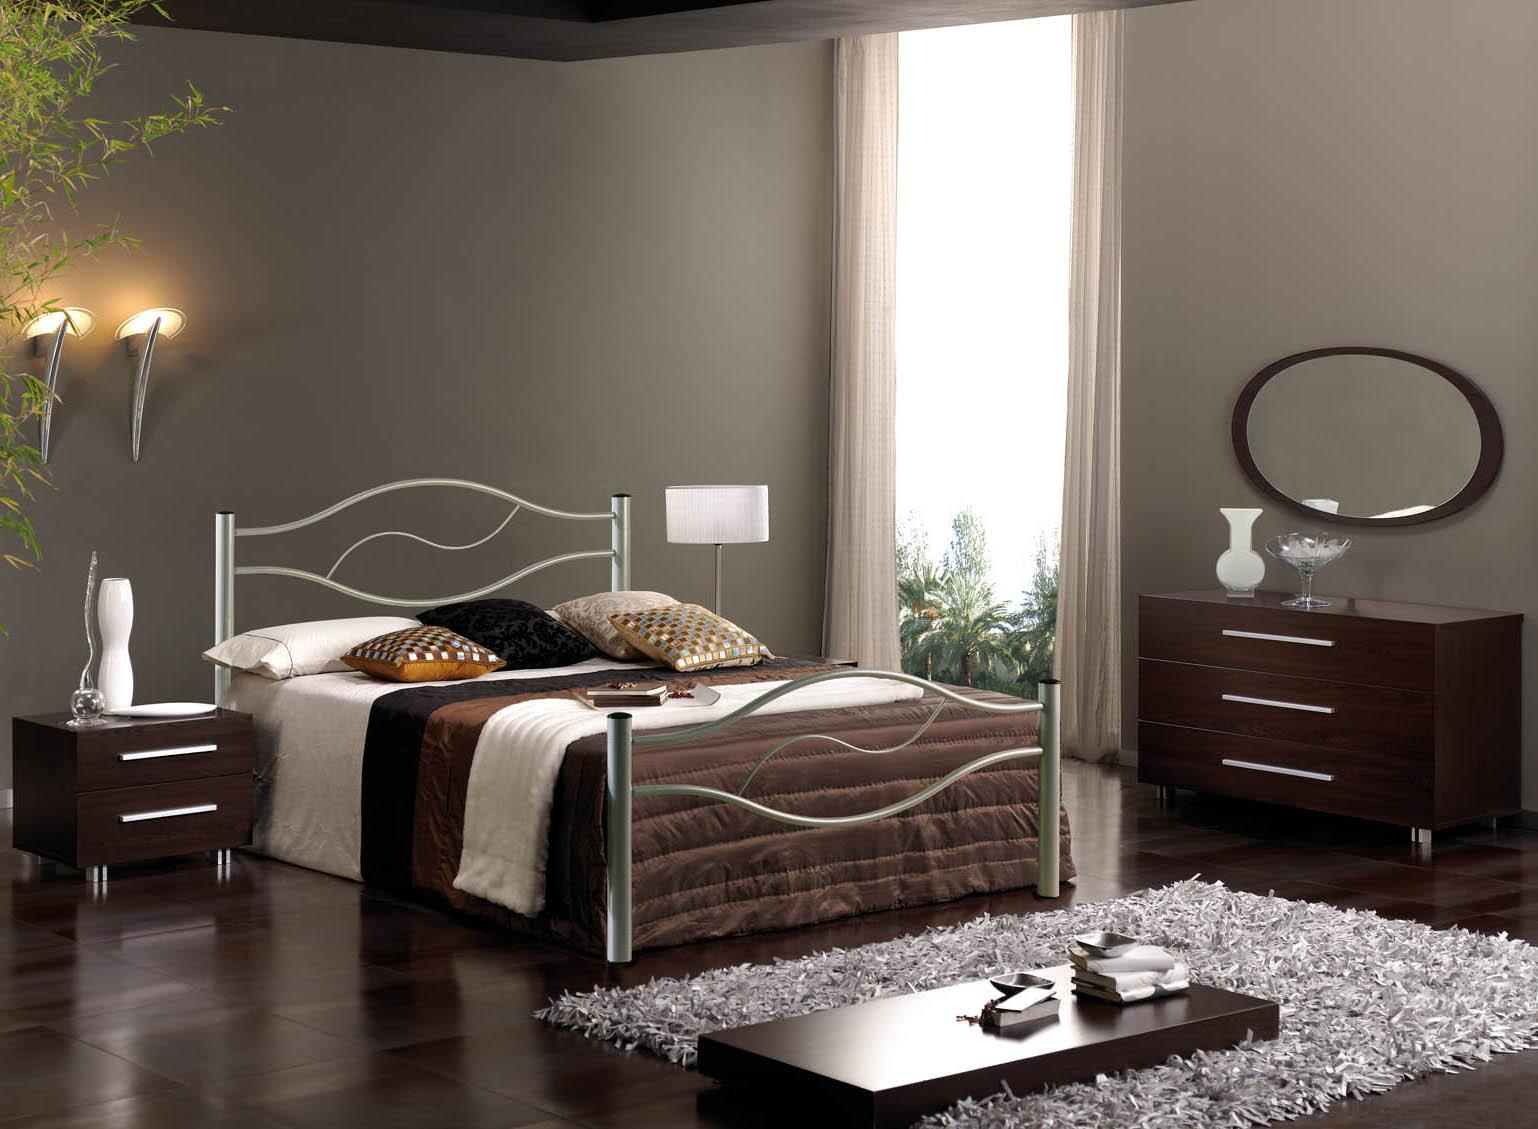 bedroom furniture arrangement ideas photo - 5